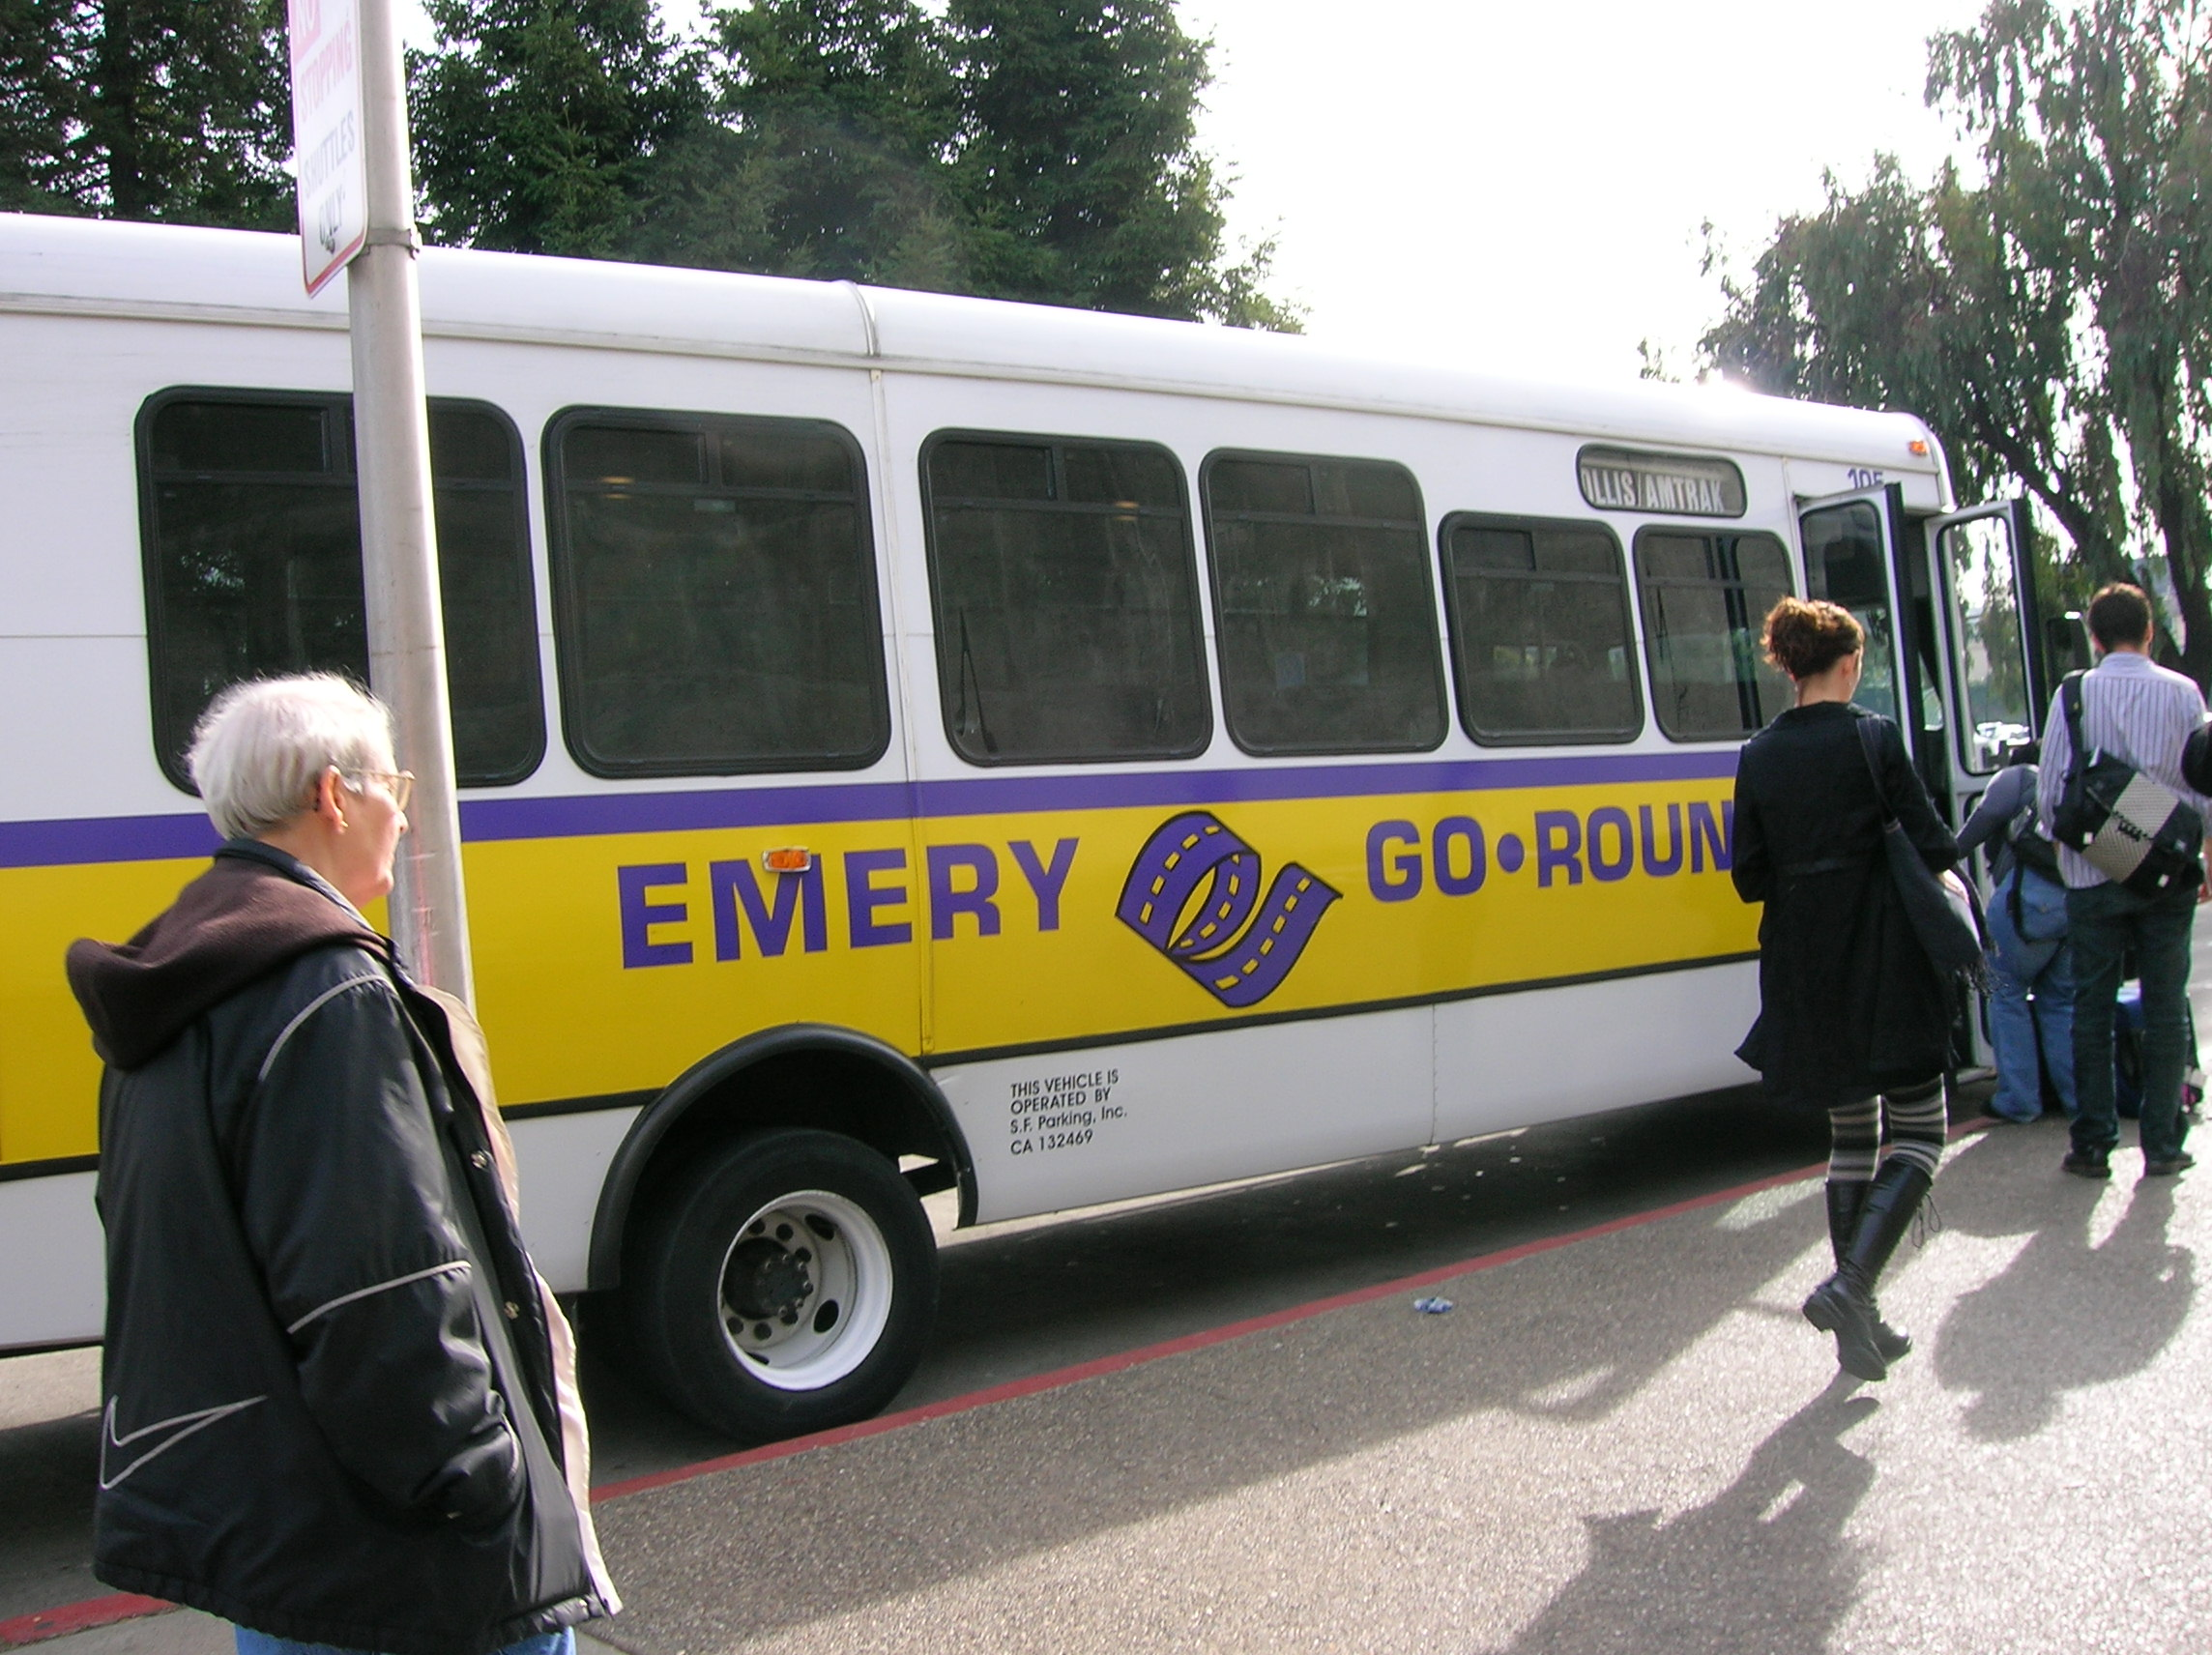 Emery Go Round Wikipedia